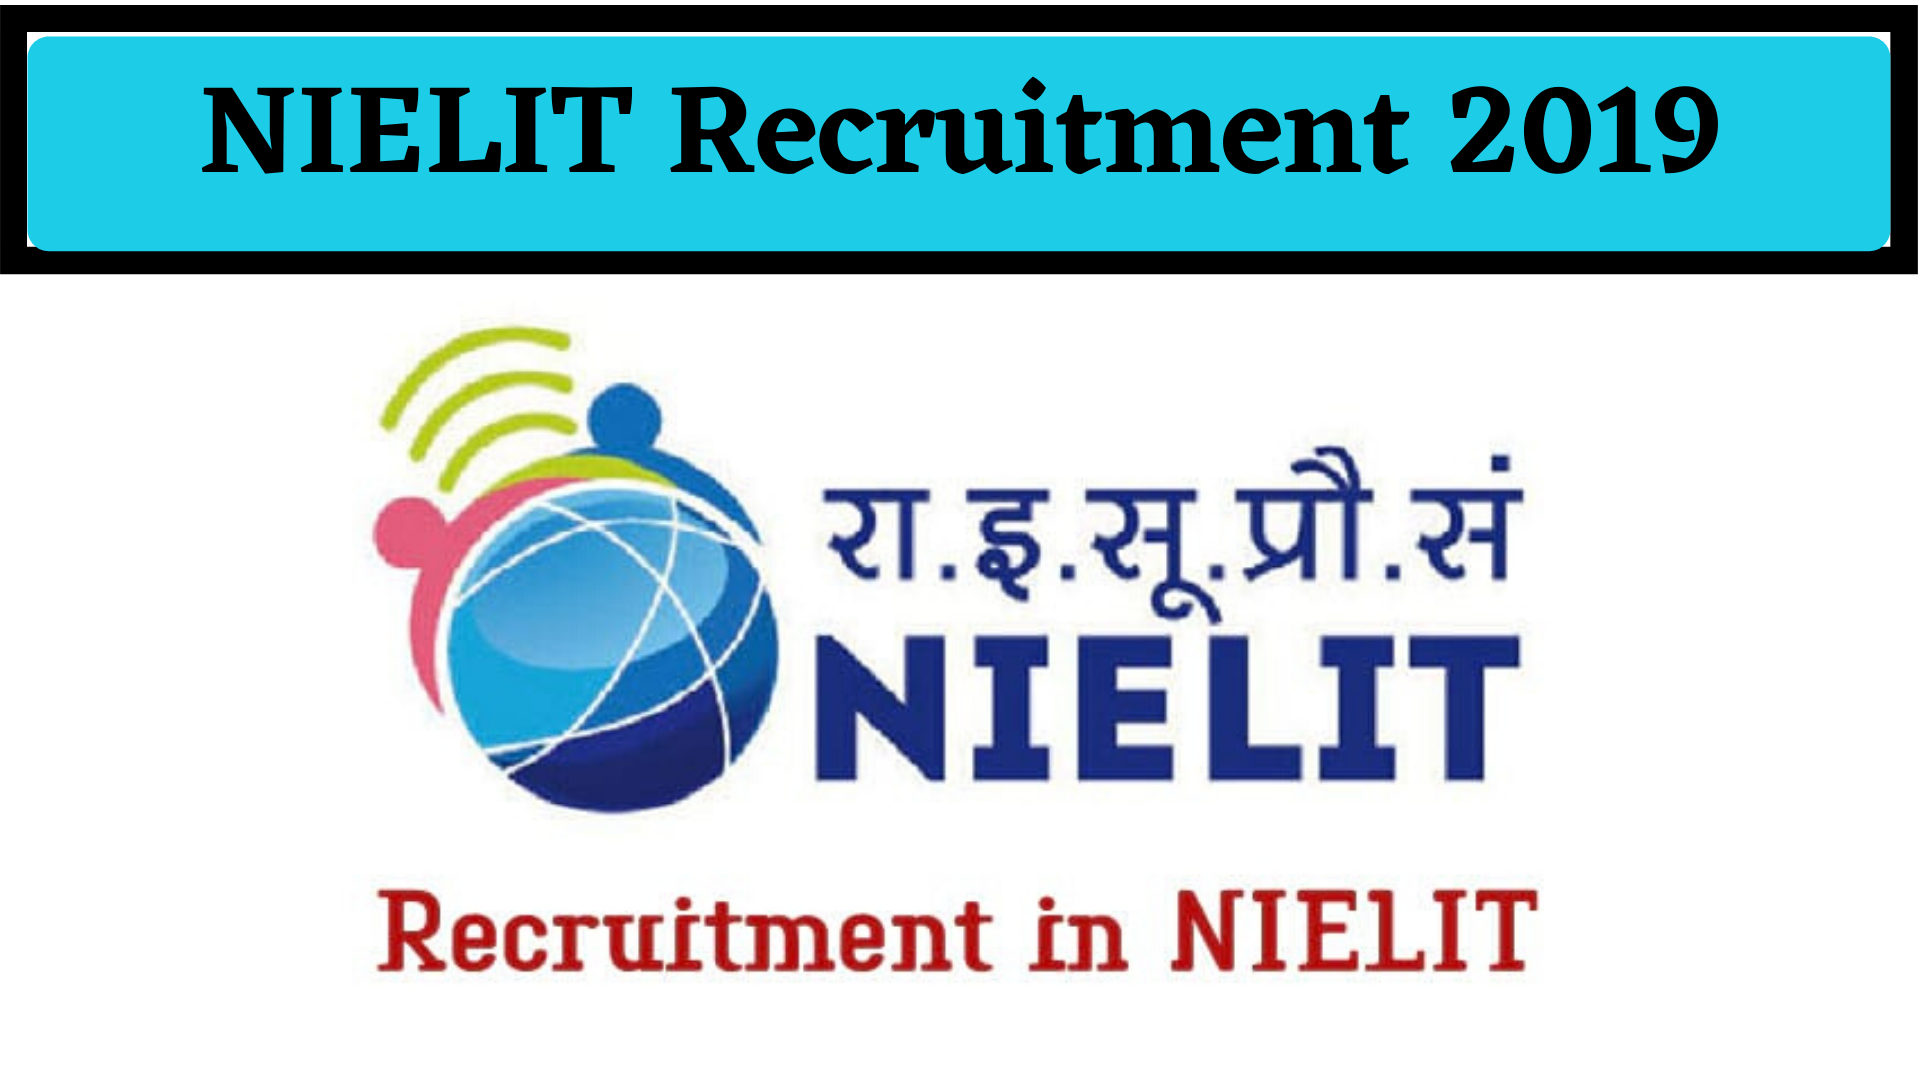 NIELIT Recruitment 2019 – National Institute of Electronics and Information Technology (NIELIT) releases the job notification for IT Resource Persons for the Post of IT training & Support Executive, Programmer Assistant, IT Manager, Sr. Programmer, System Analyst, Assistant Programmer, Programmer, Project / Team Lead, ... Job Role‎: ‎Programmer Assistant/ Assistant Total Vacancies‎: ‎5 Job Location‎: ‎Calicut Walk-In Date‎: ‎14 October 2019